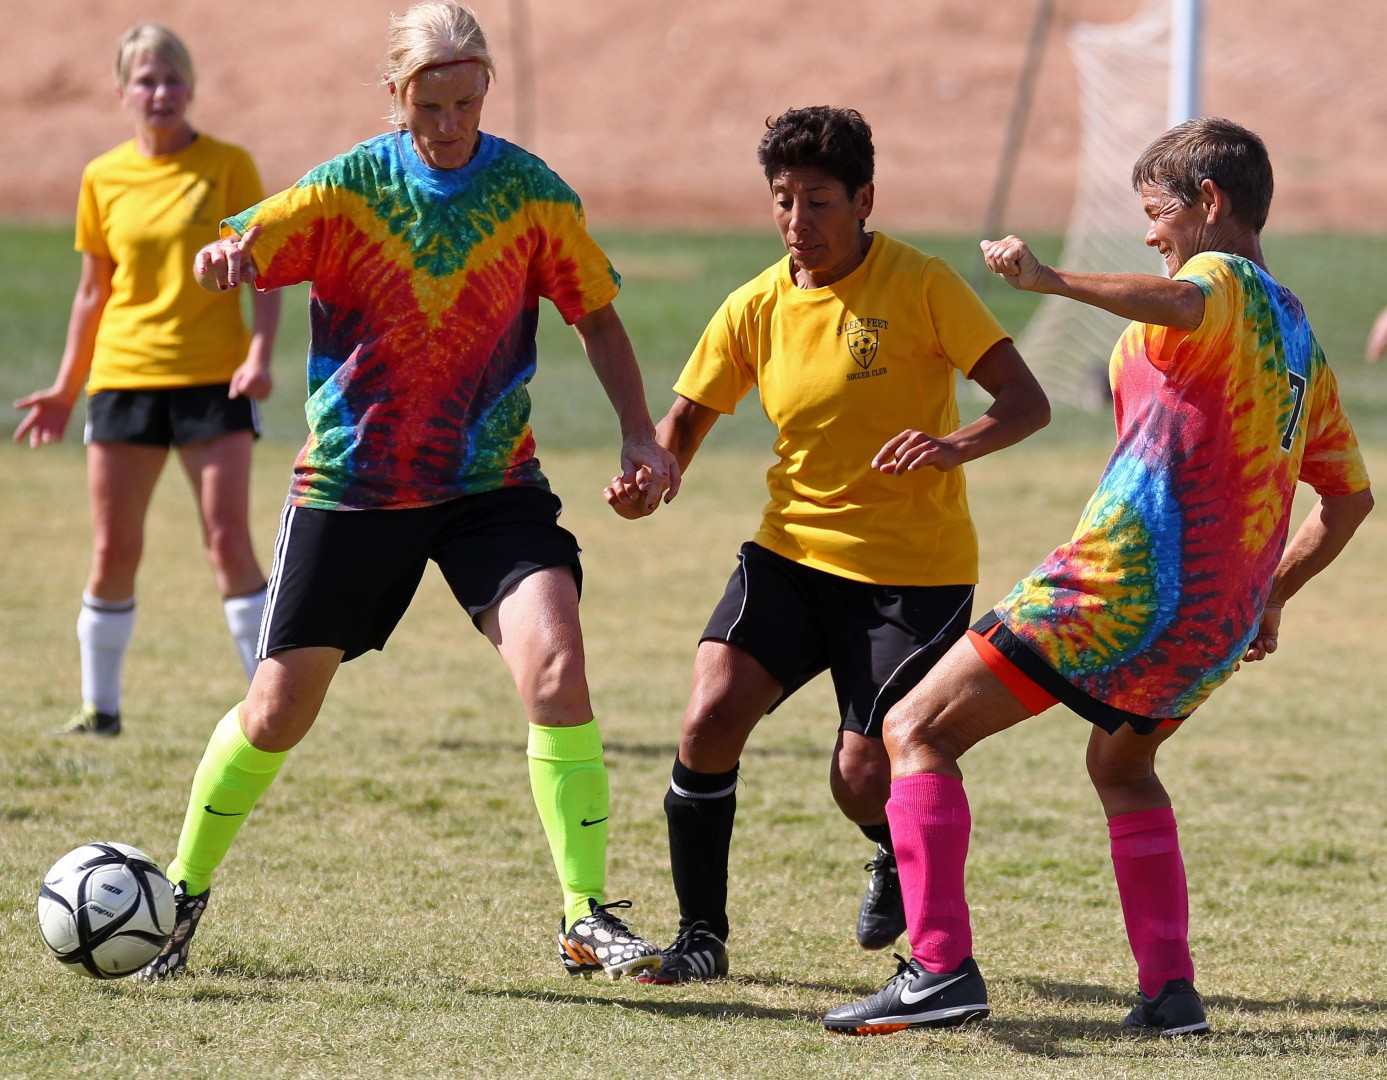 how to get recruited for soccer